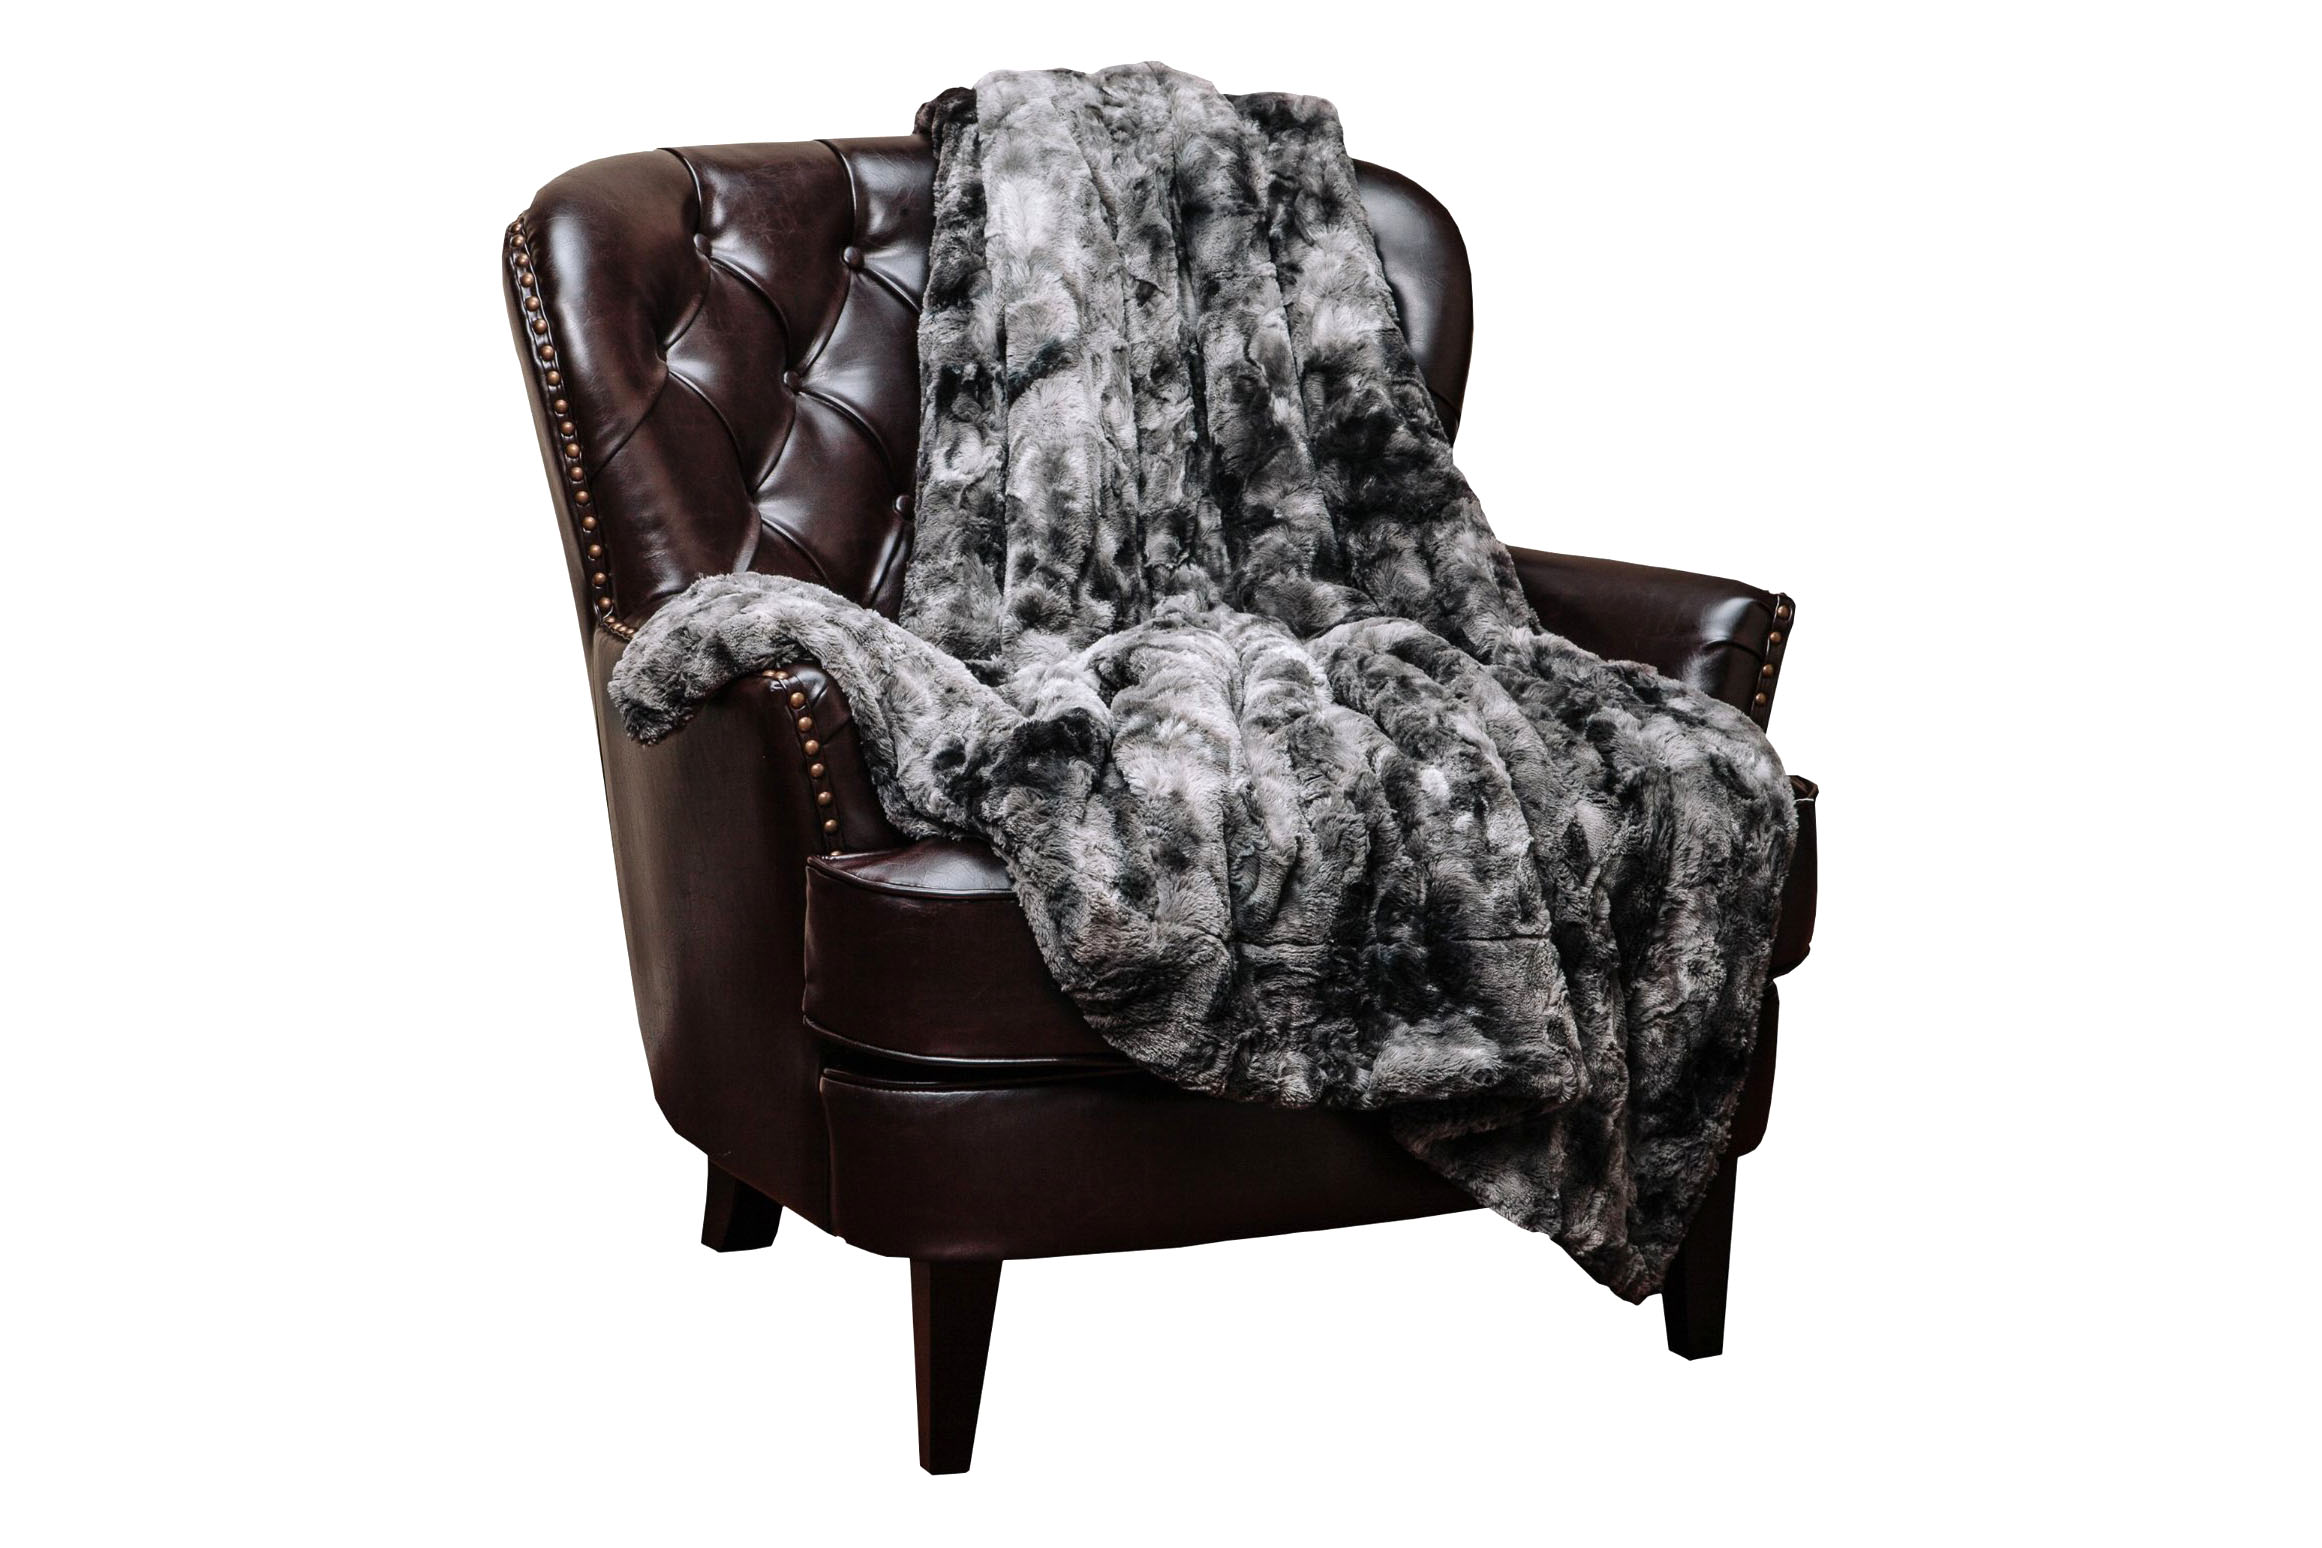 Super Soft Fuzz Fur Throw Blanket - 5 stars - $35 (Prime)